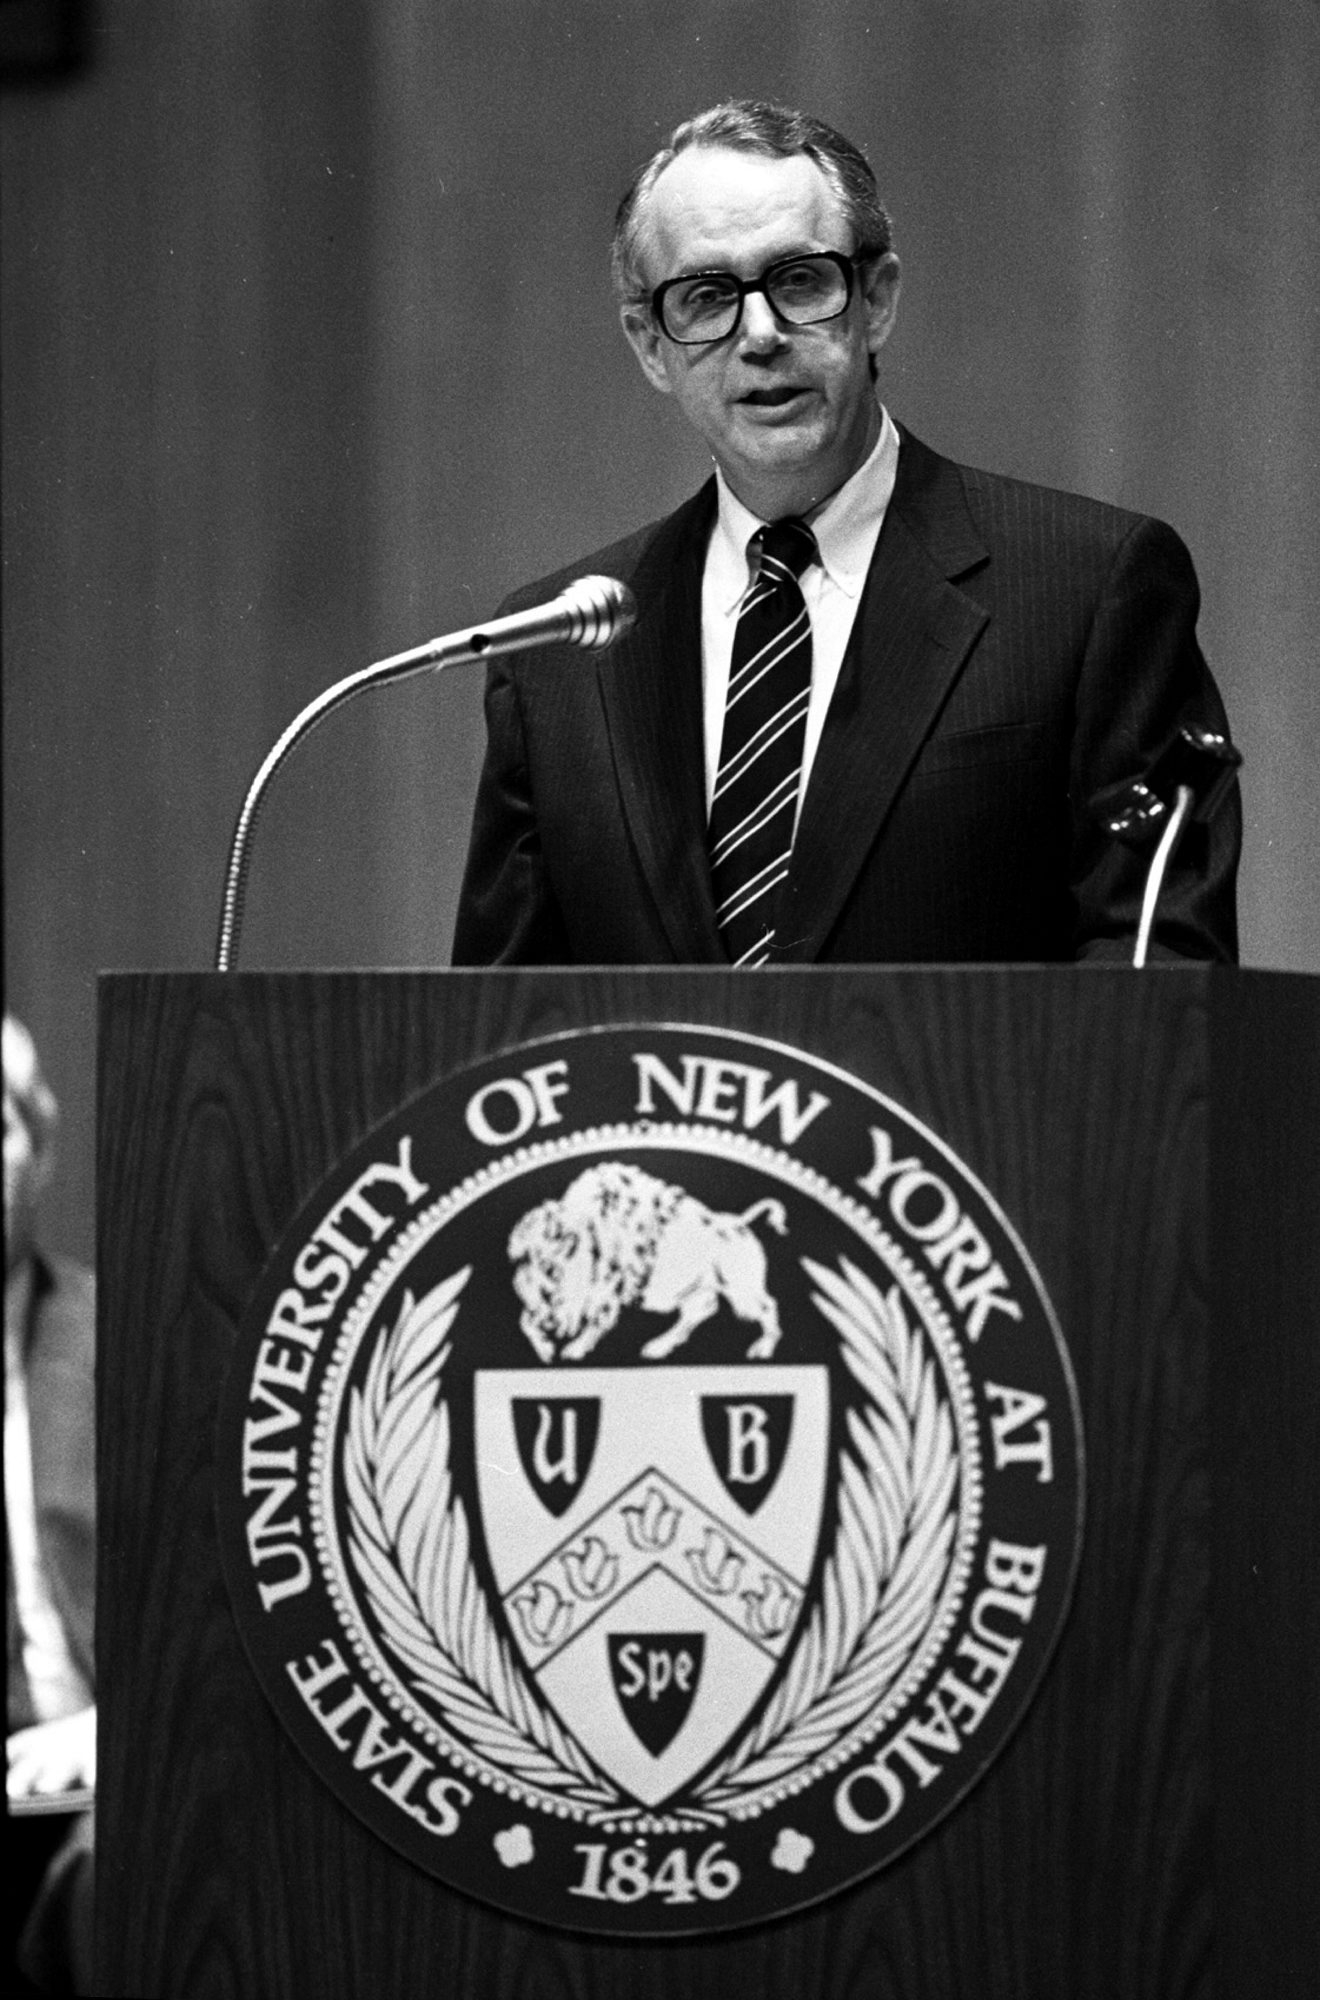 Dr. Steven B. Sample, at his farewell speech at UB, worked tirelessly to convince others of the strength of the institution.